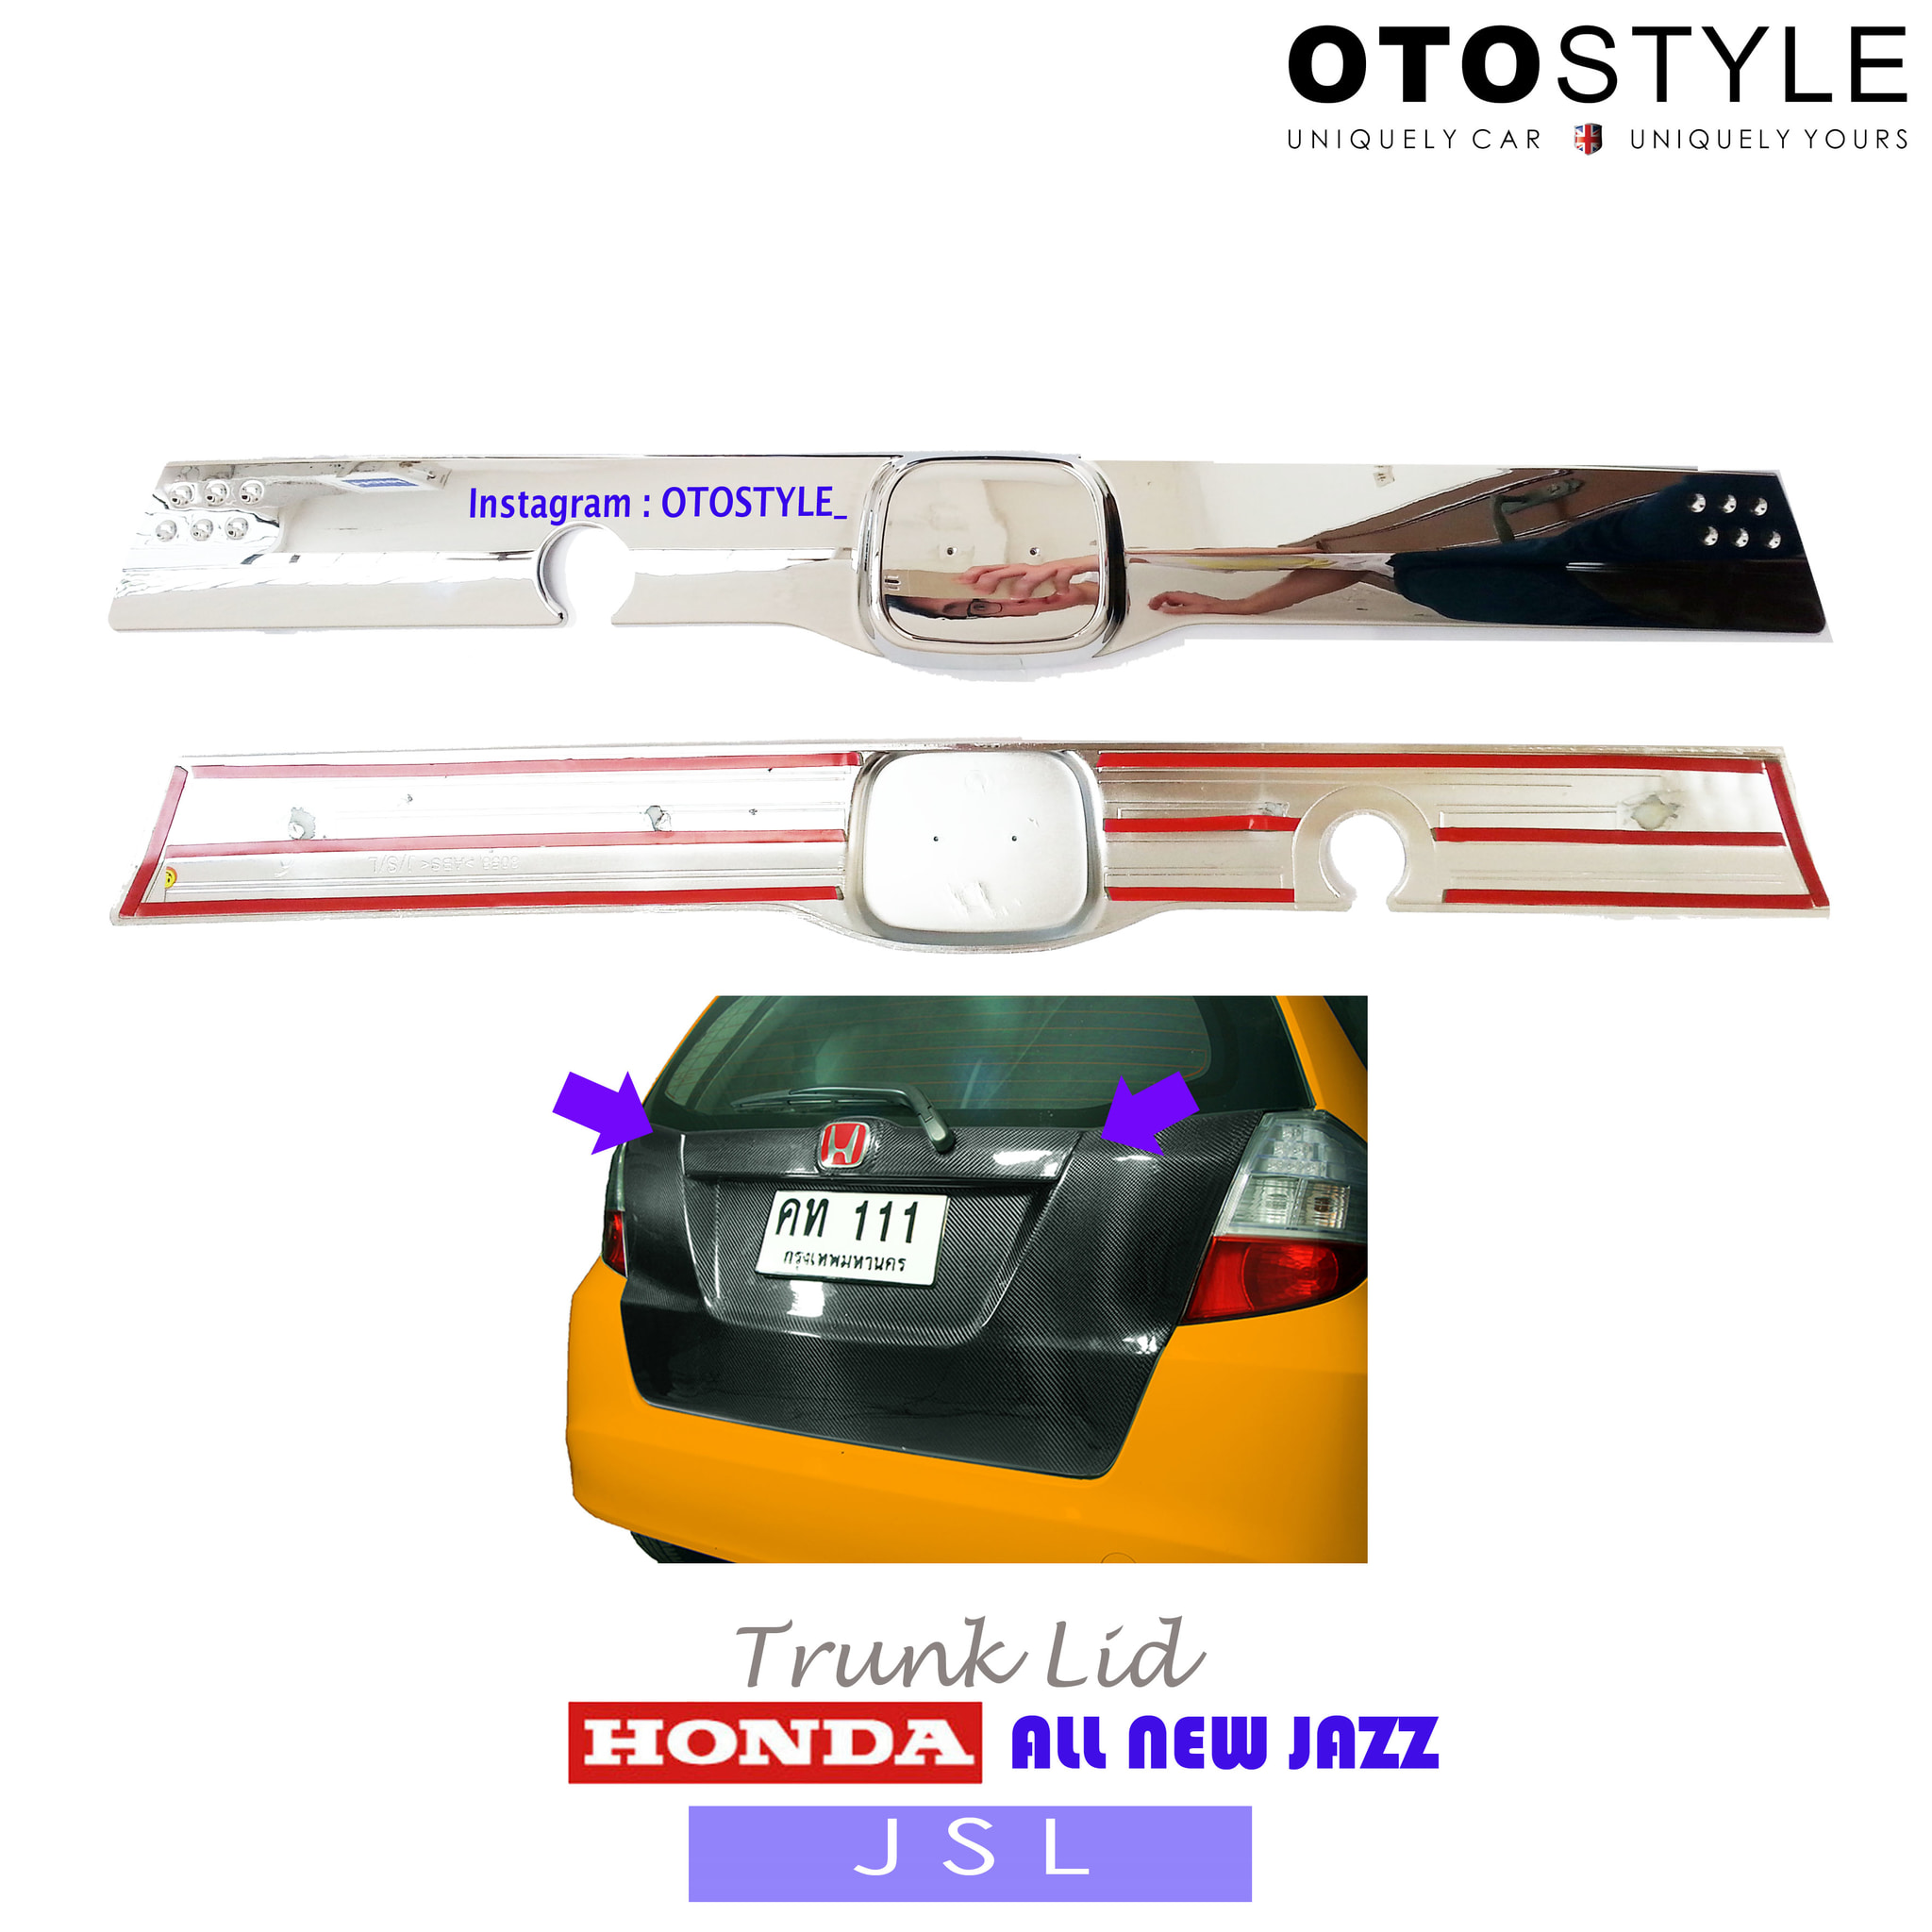 Trunk Lid All New Jazz Original / TrunkLid Jazz